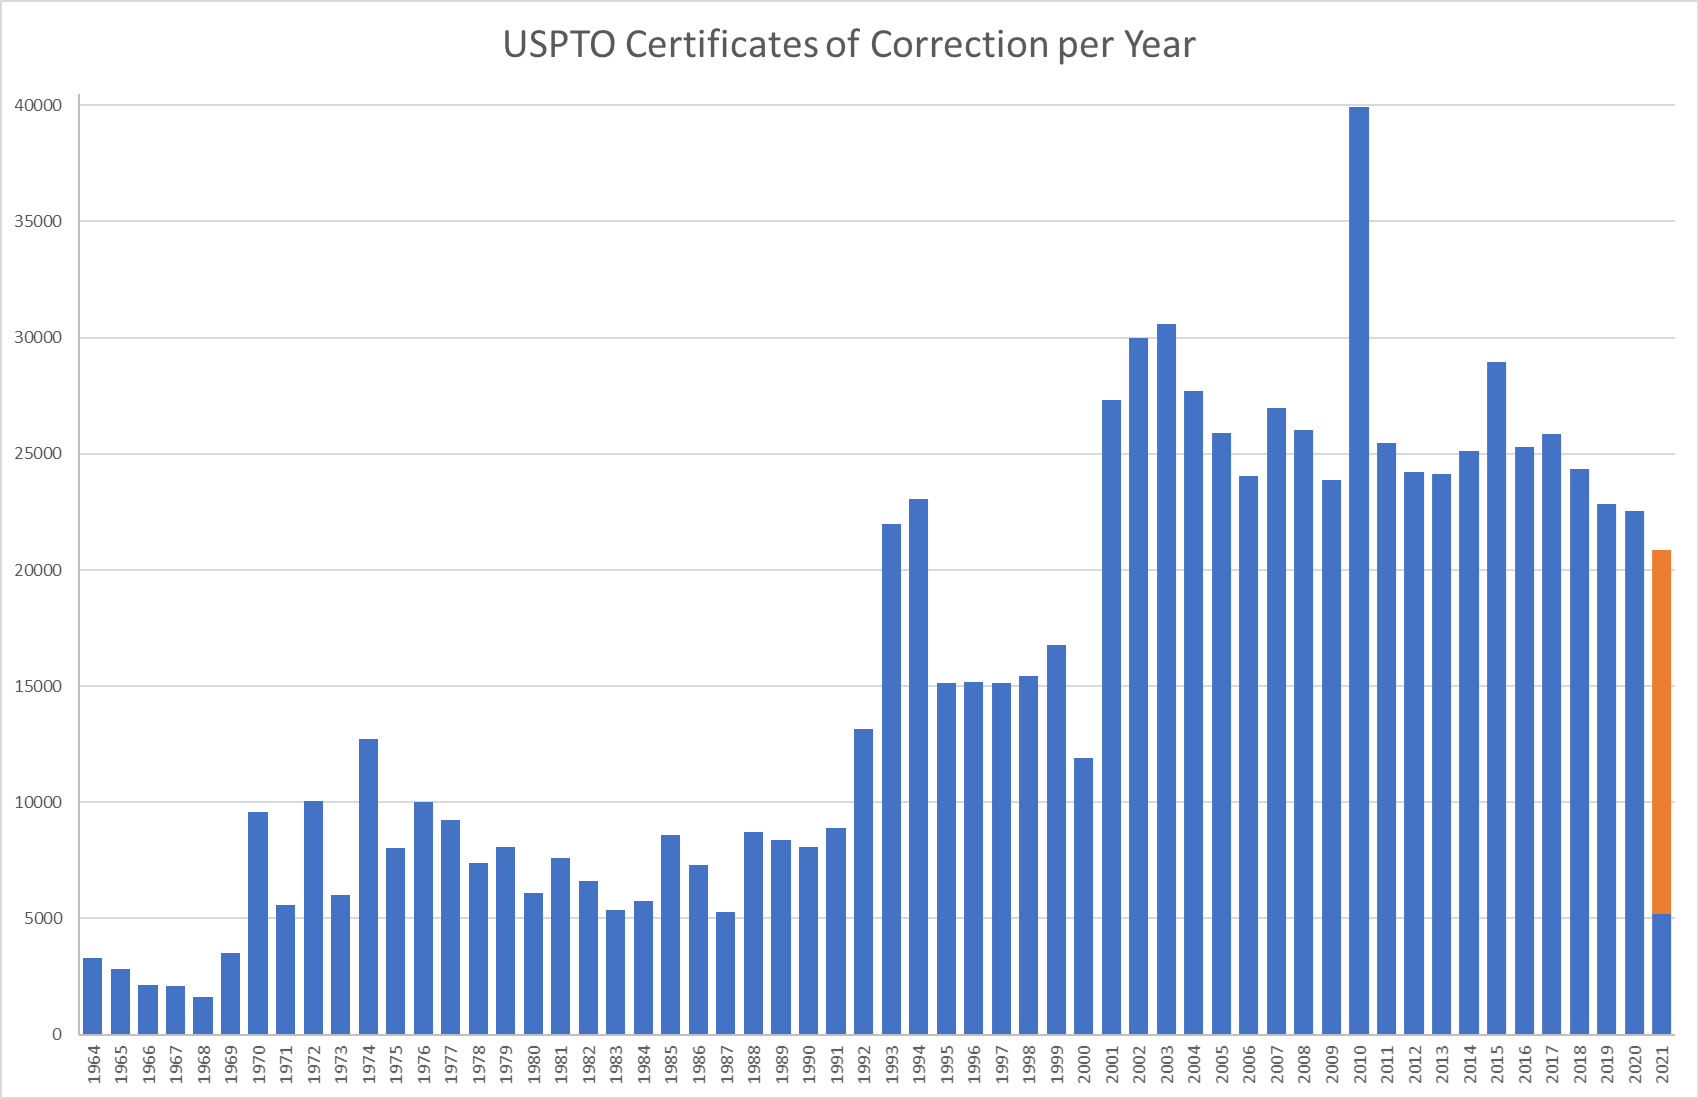 Chart showing certificates of correction per year